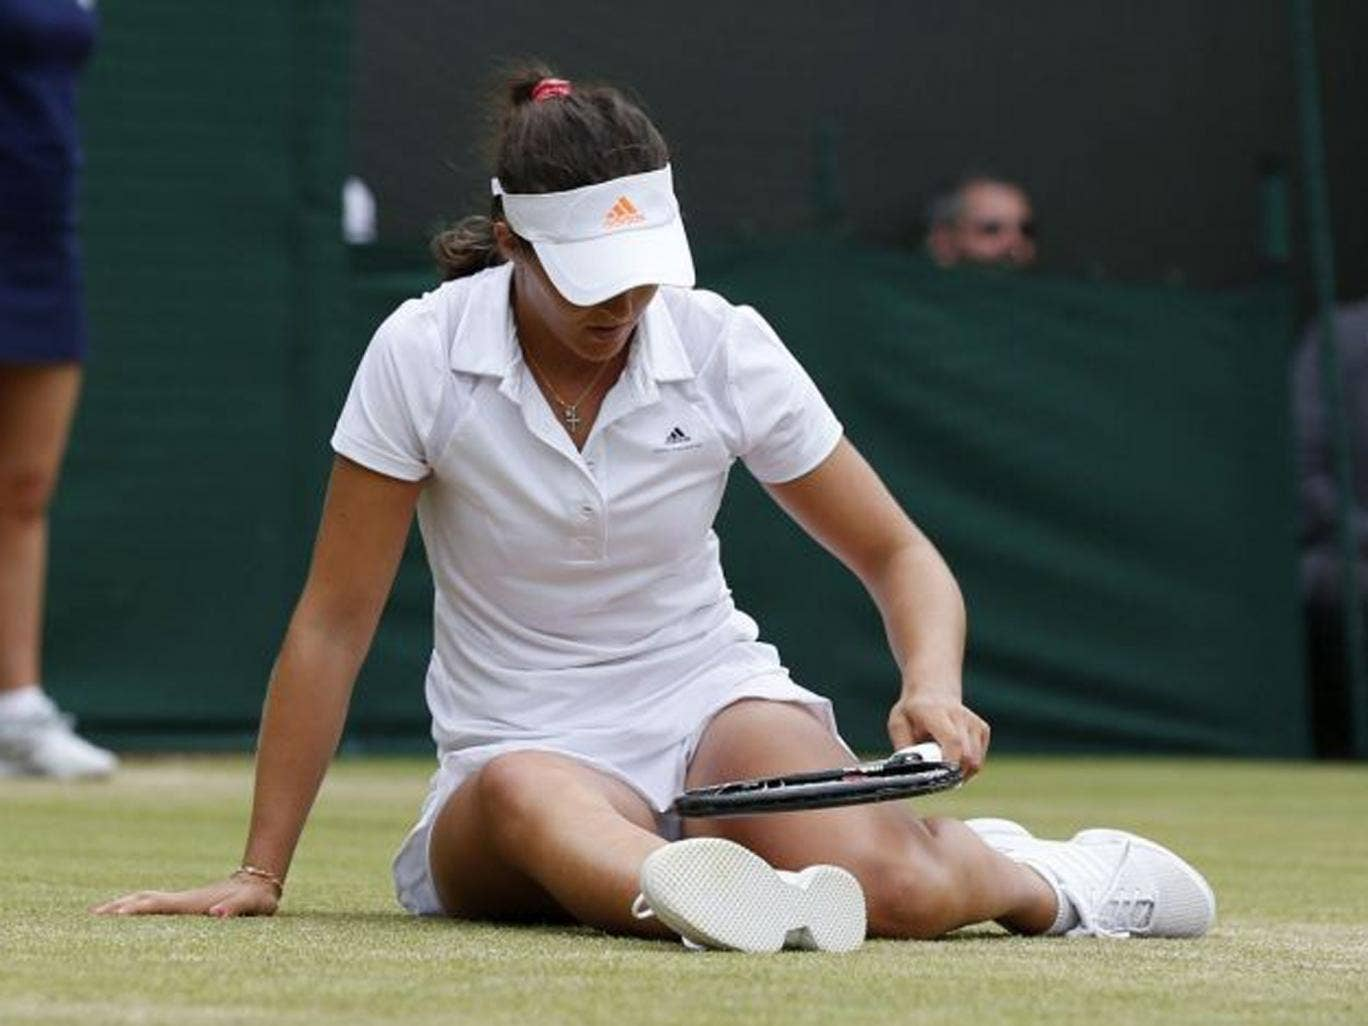 Laura Robson was beaten in straight-sets 6-7 5-7 by Kaia Kanepi